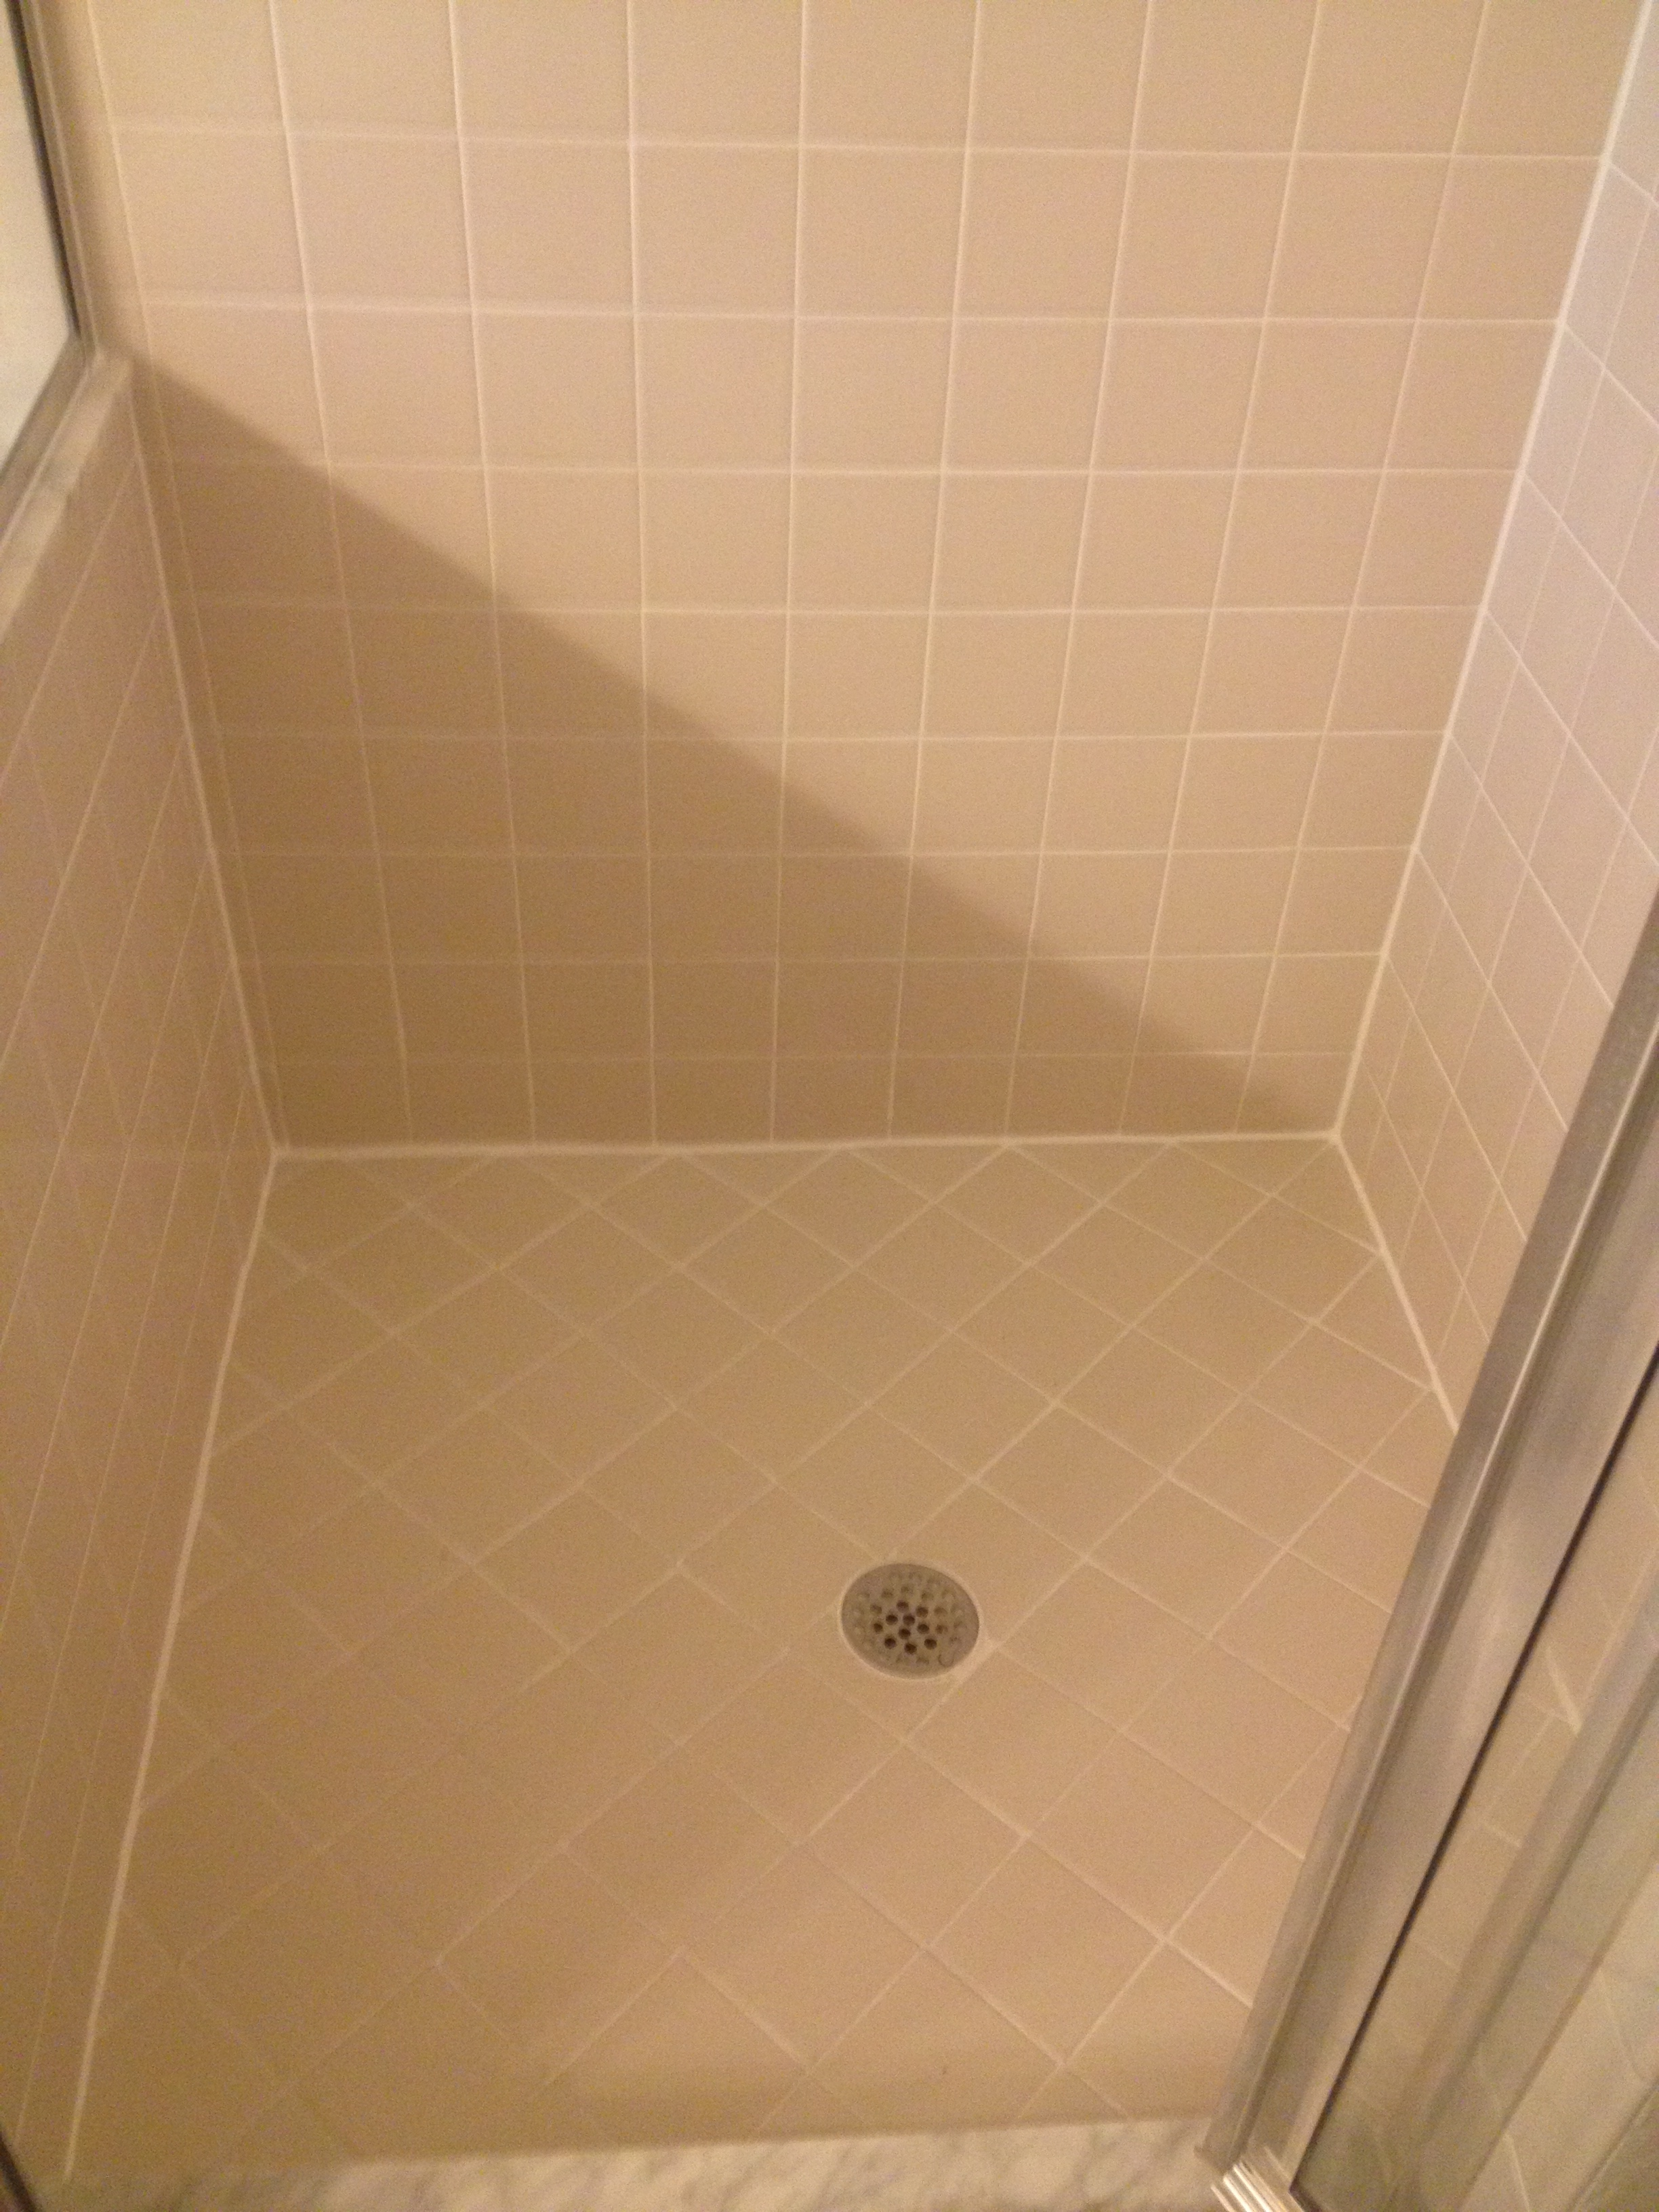 Clean Showers And Tile Are What We Do